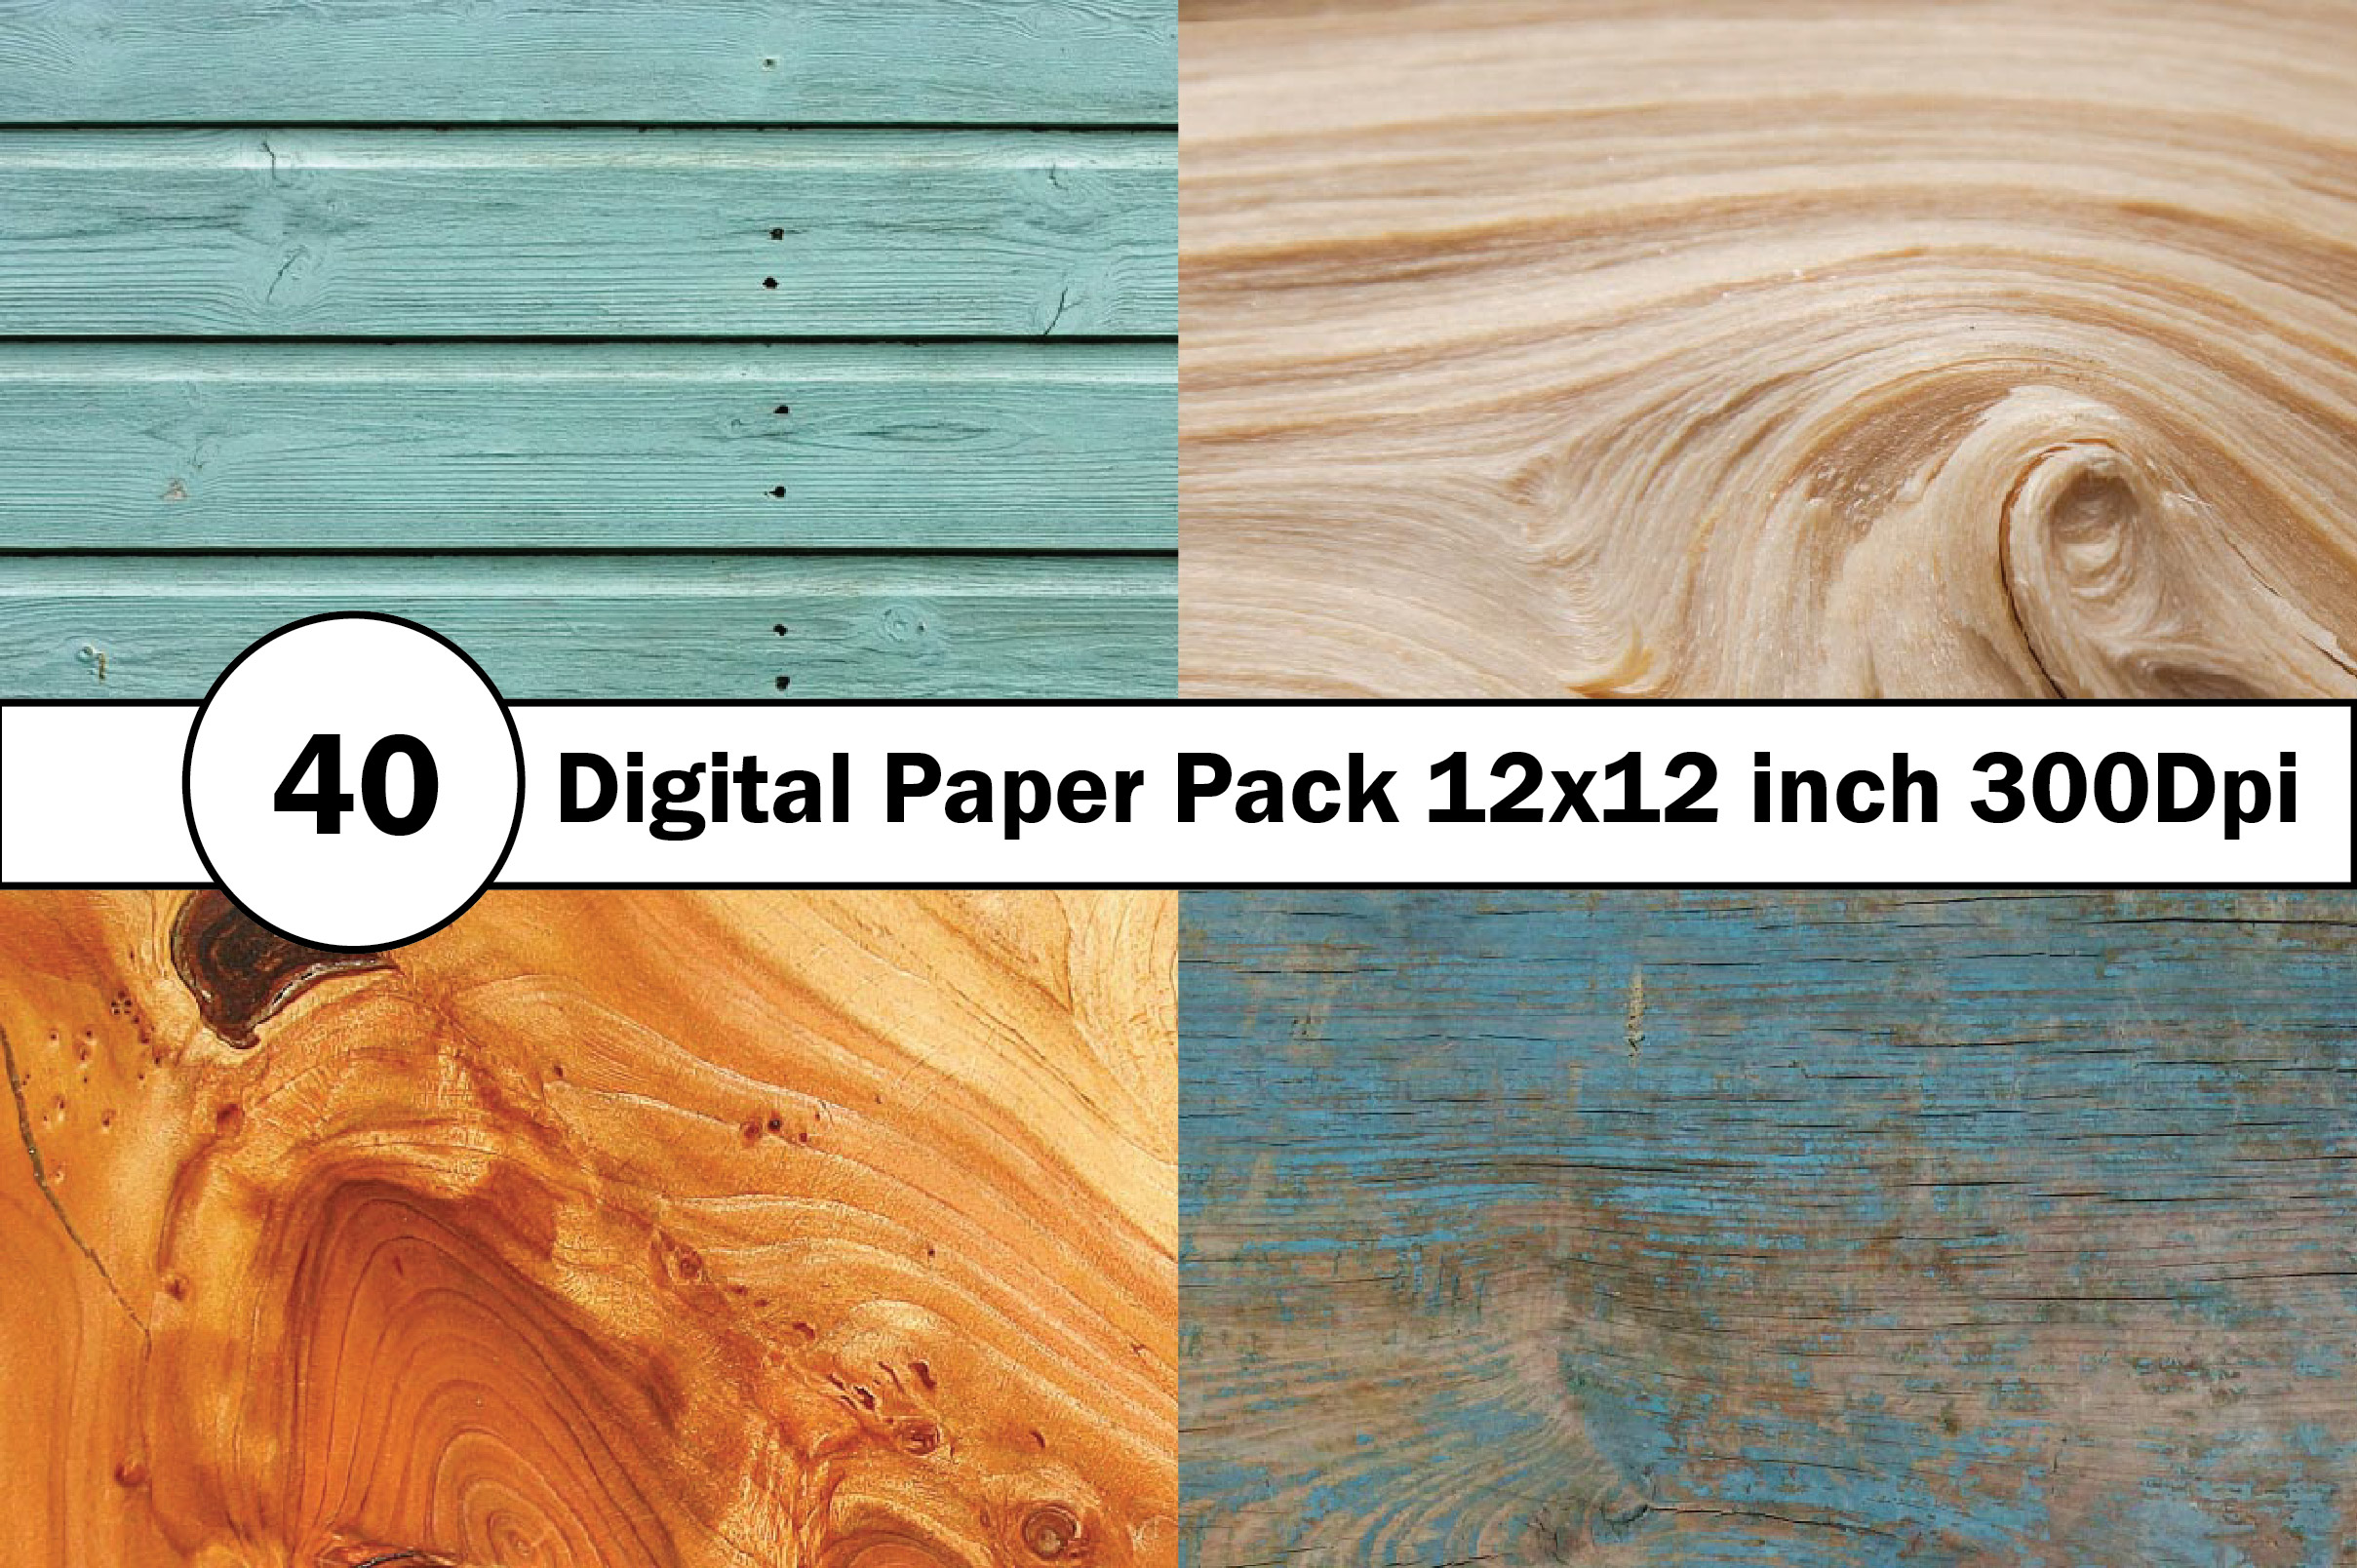 40 Digital Paper Pack 12x12 inch 300 Dpi example image 7